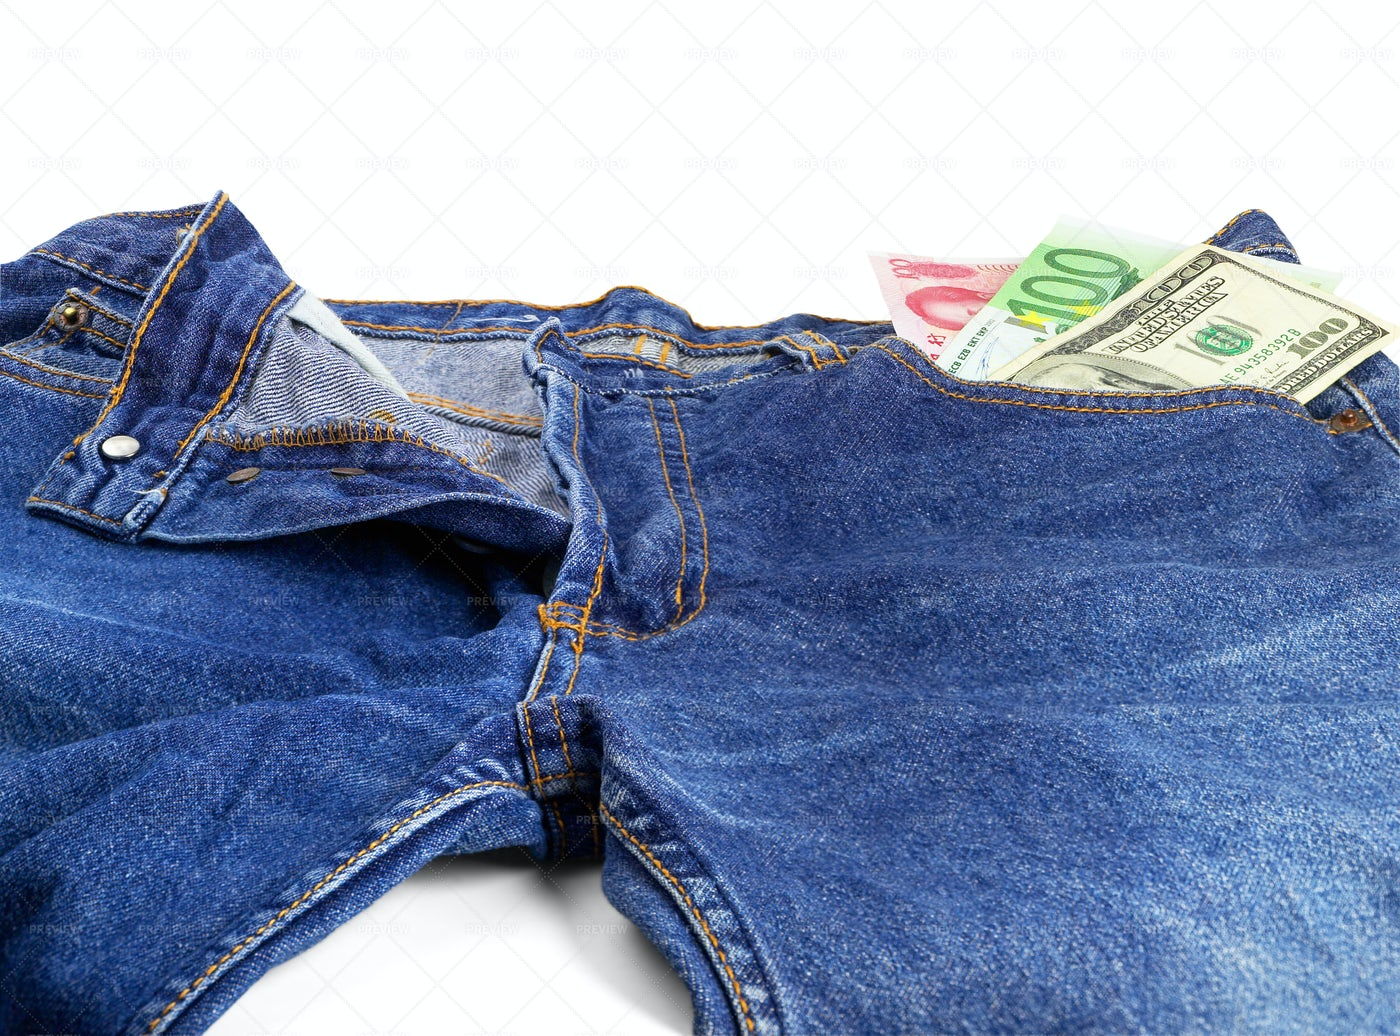 Blue Jeans And Bills: Stock Photos